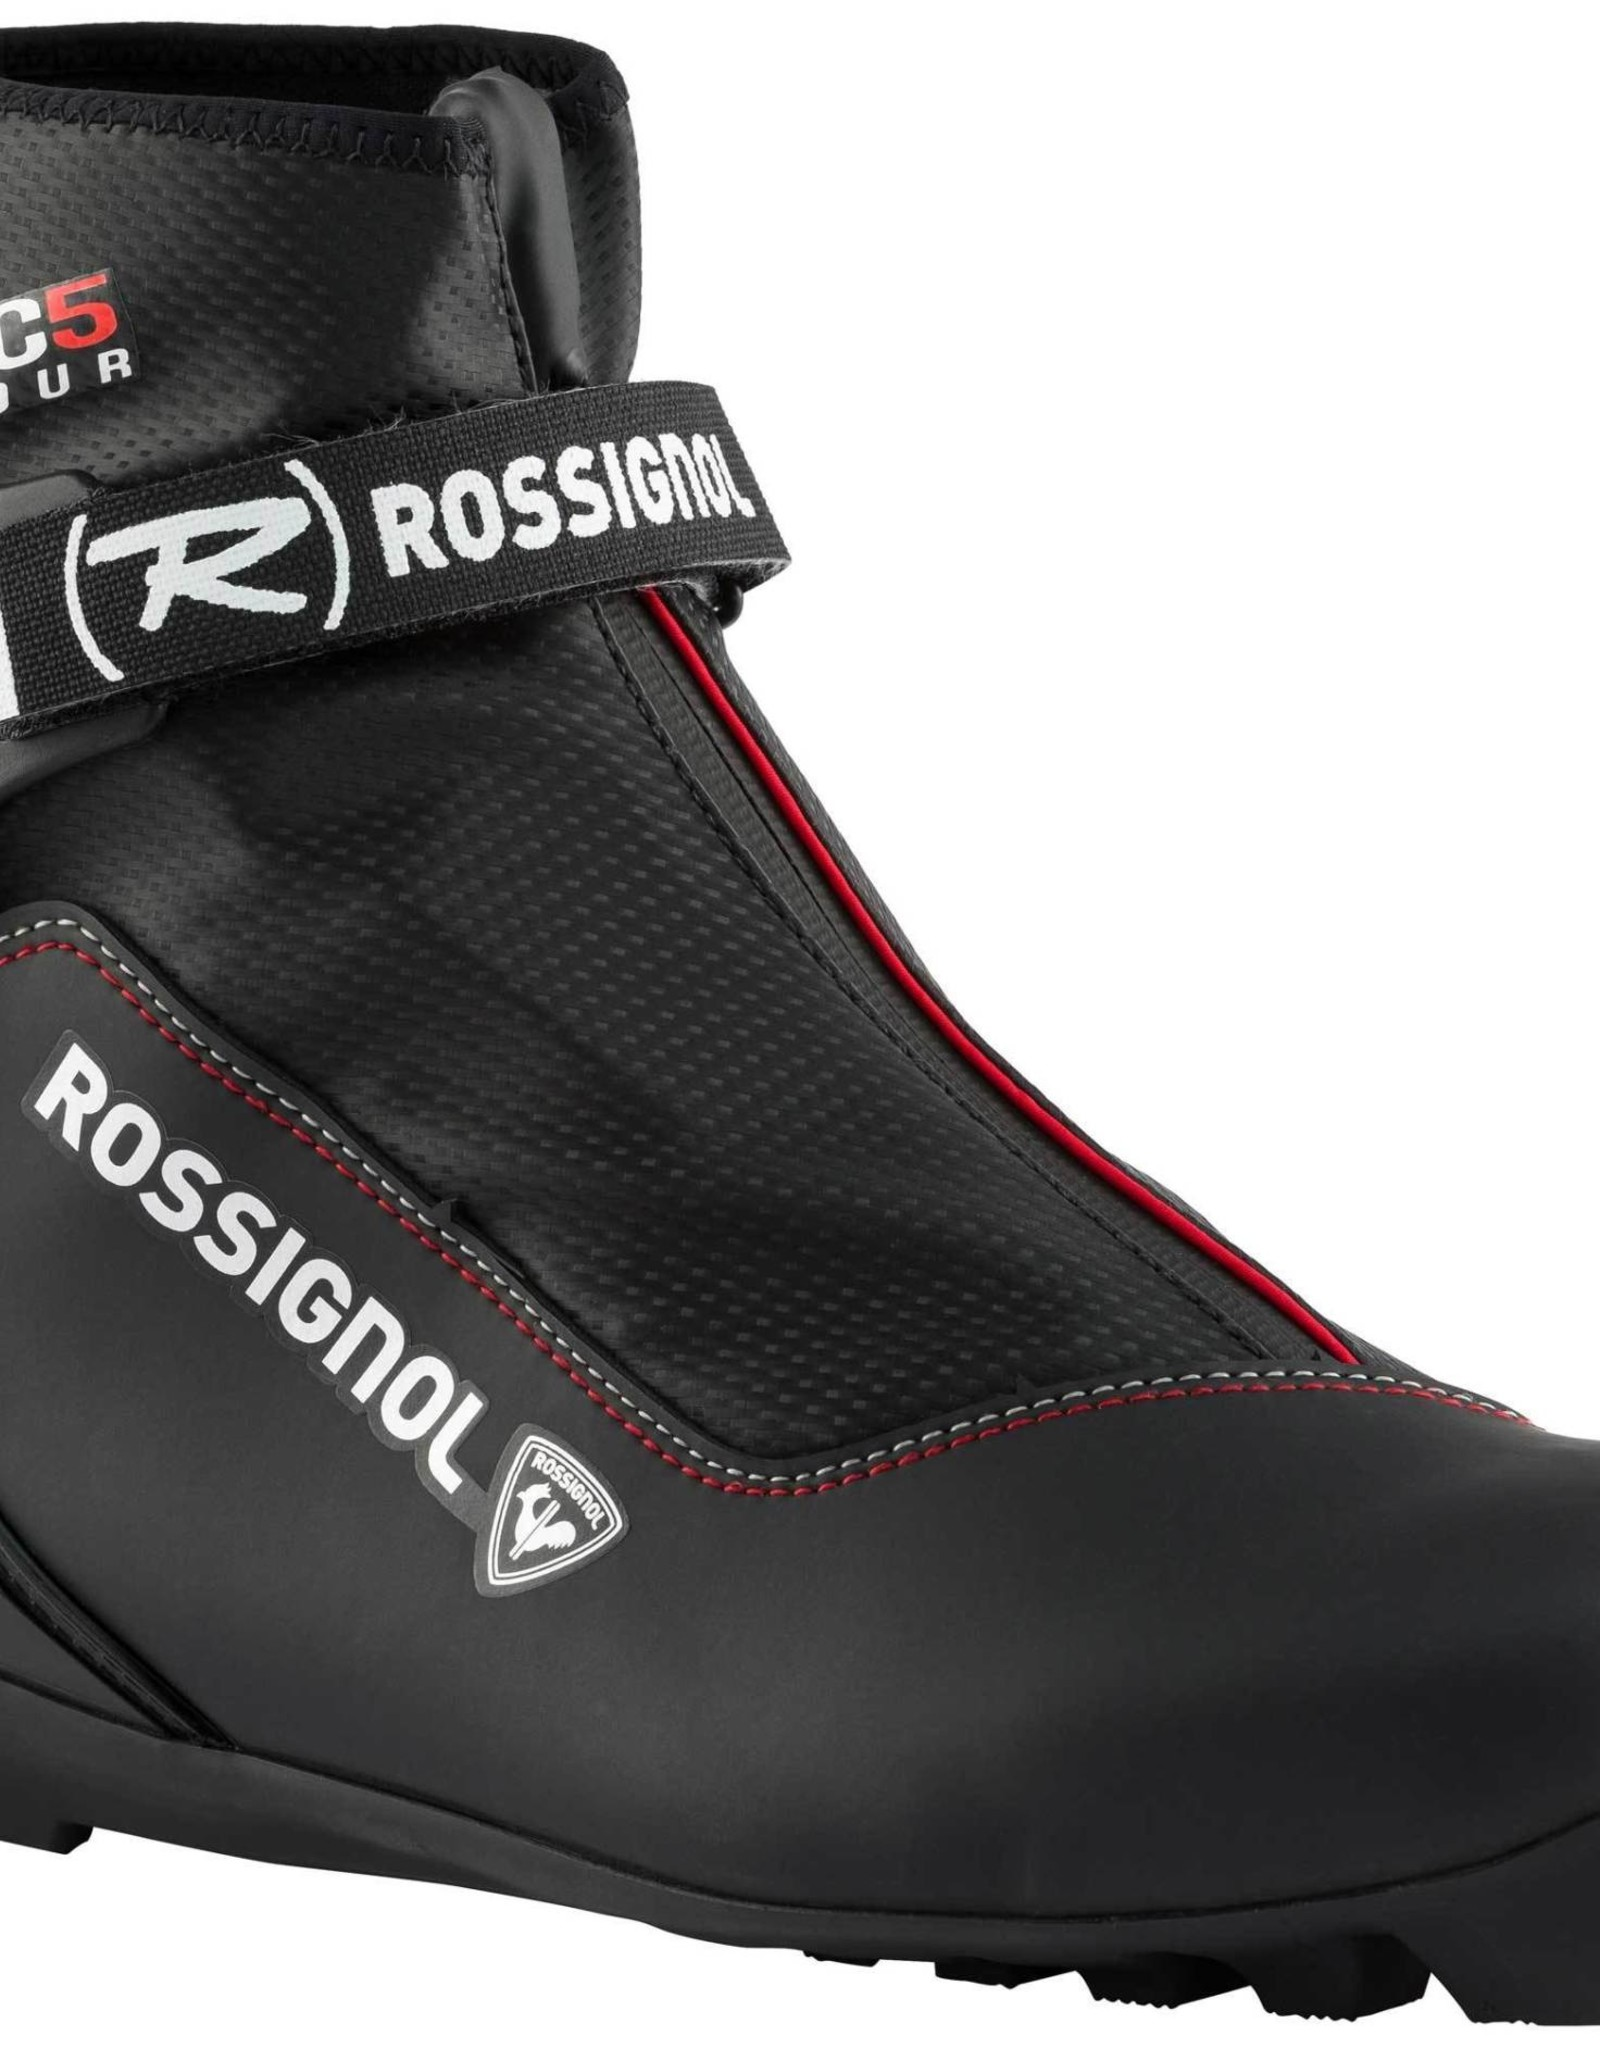 Rossignol 2021 XC-5 X5 Touring Boots